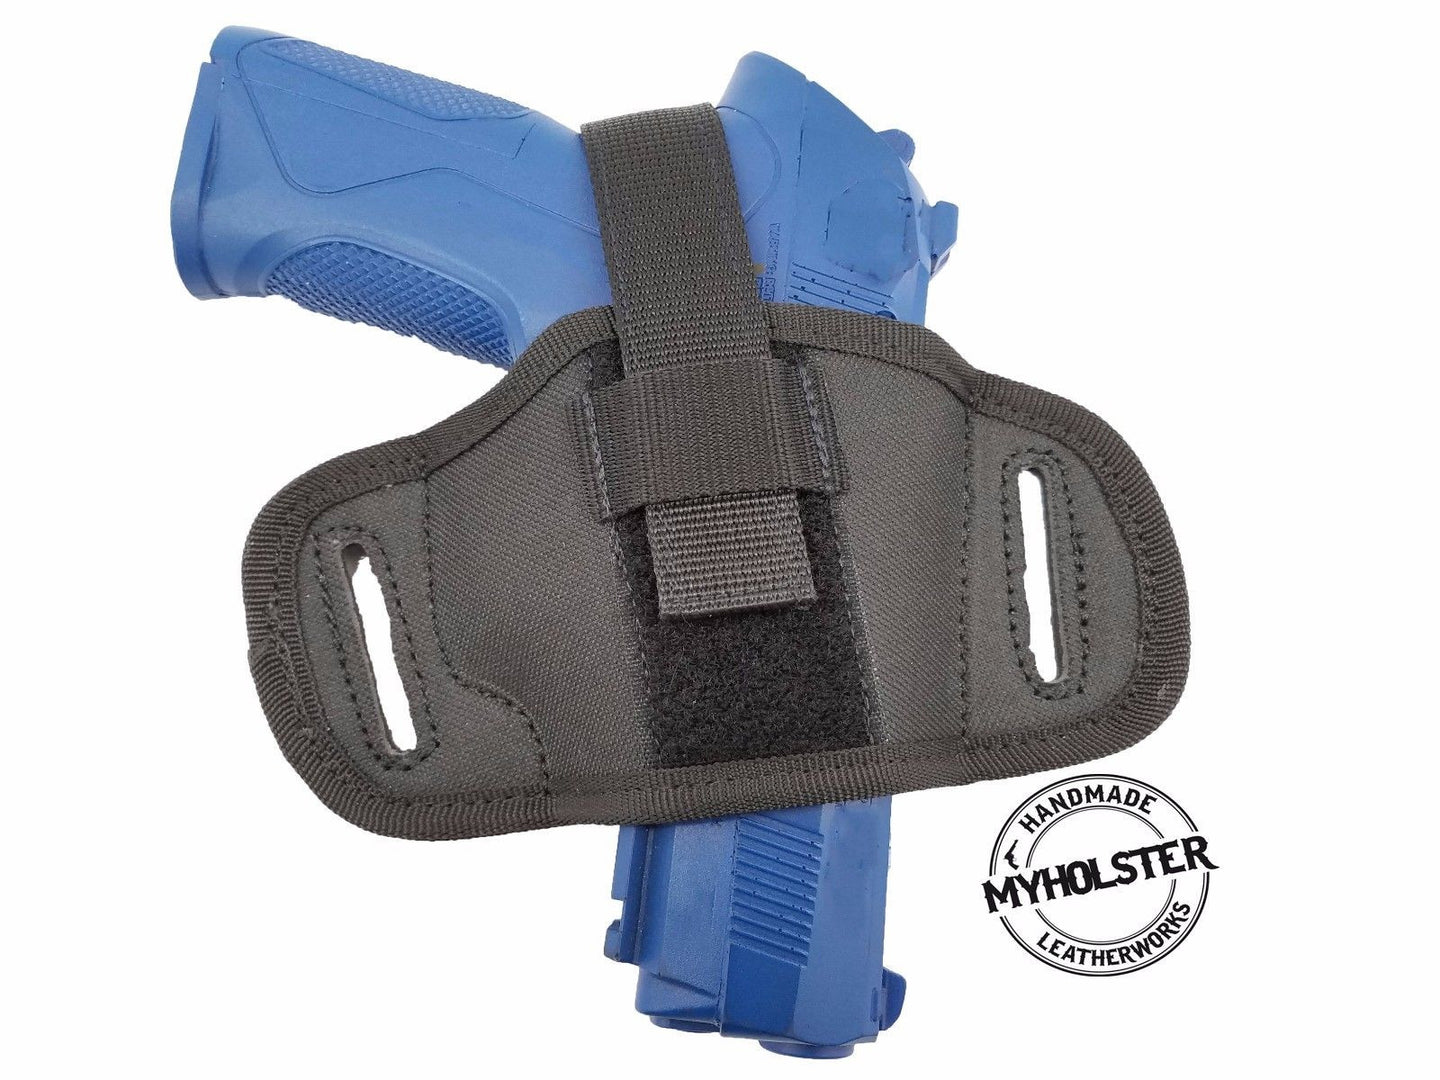 Semi-molded Thumb Break Pancake Belt Holster for Sig Sauer P228